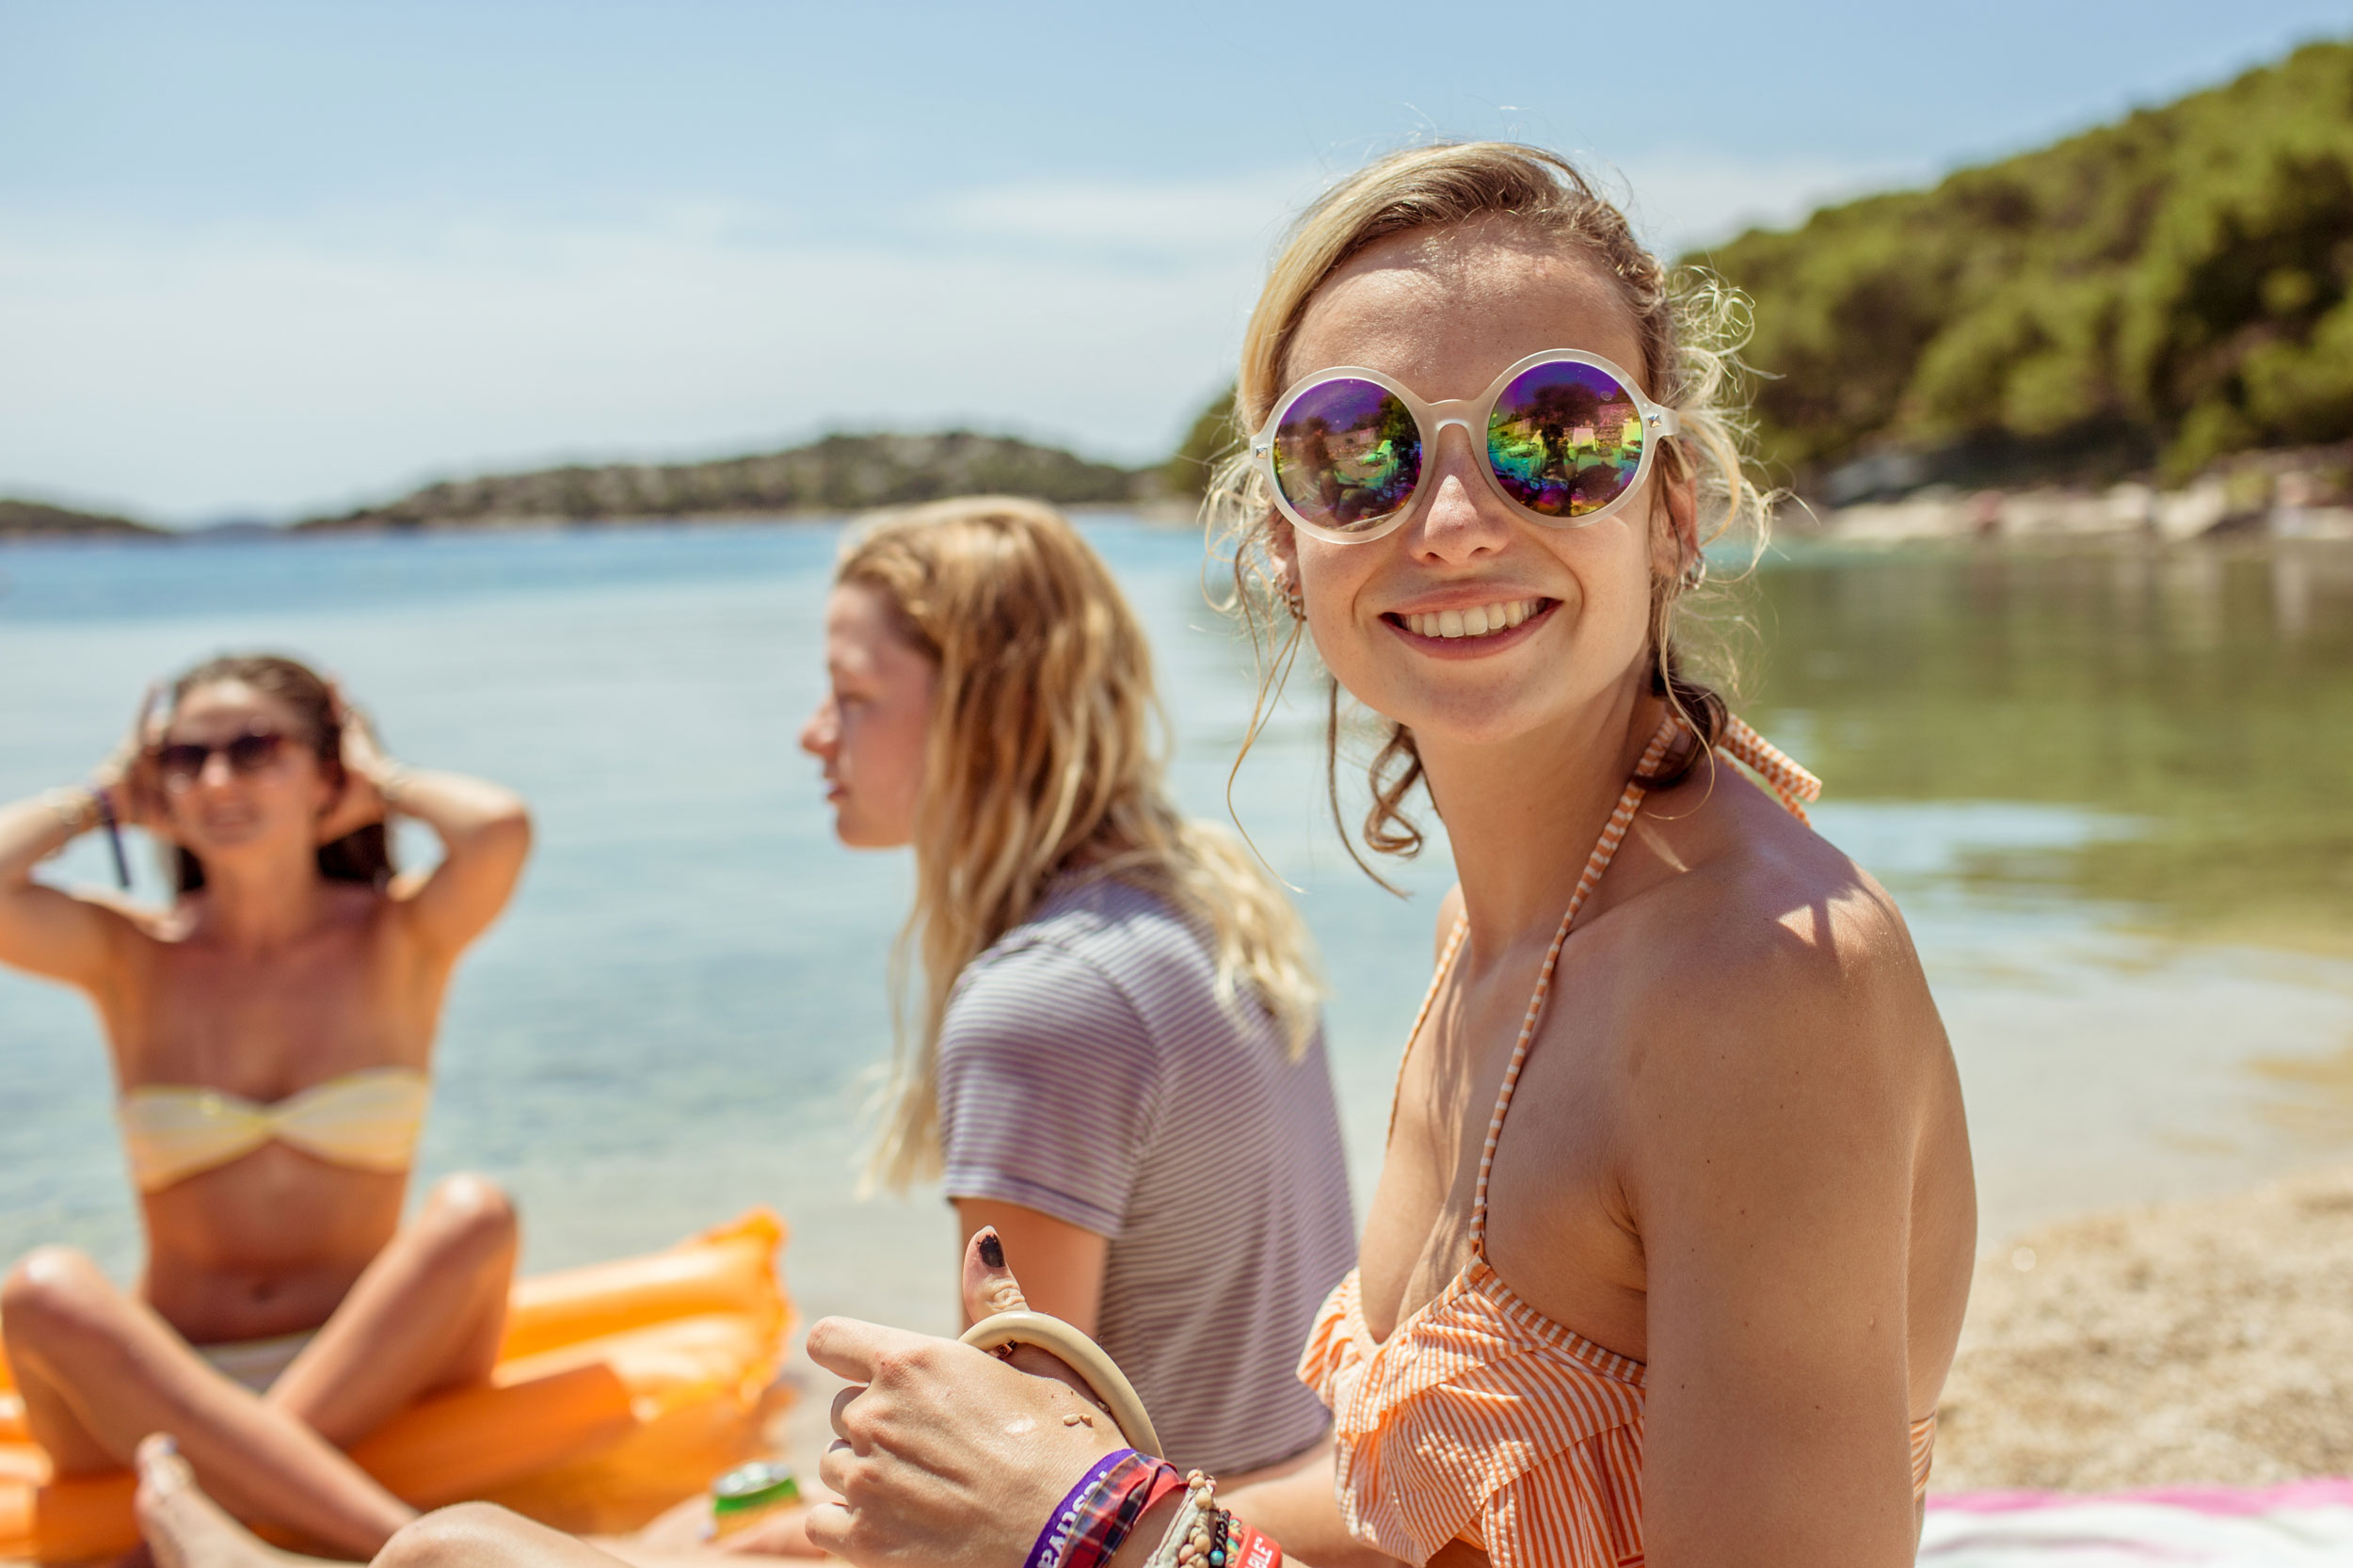 Trio of girls at the beach with the scene reflecting in one of their sunglasses